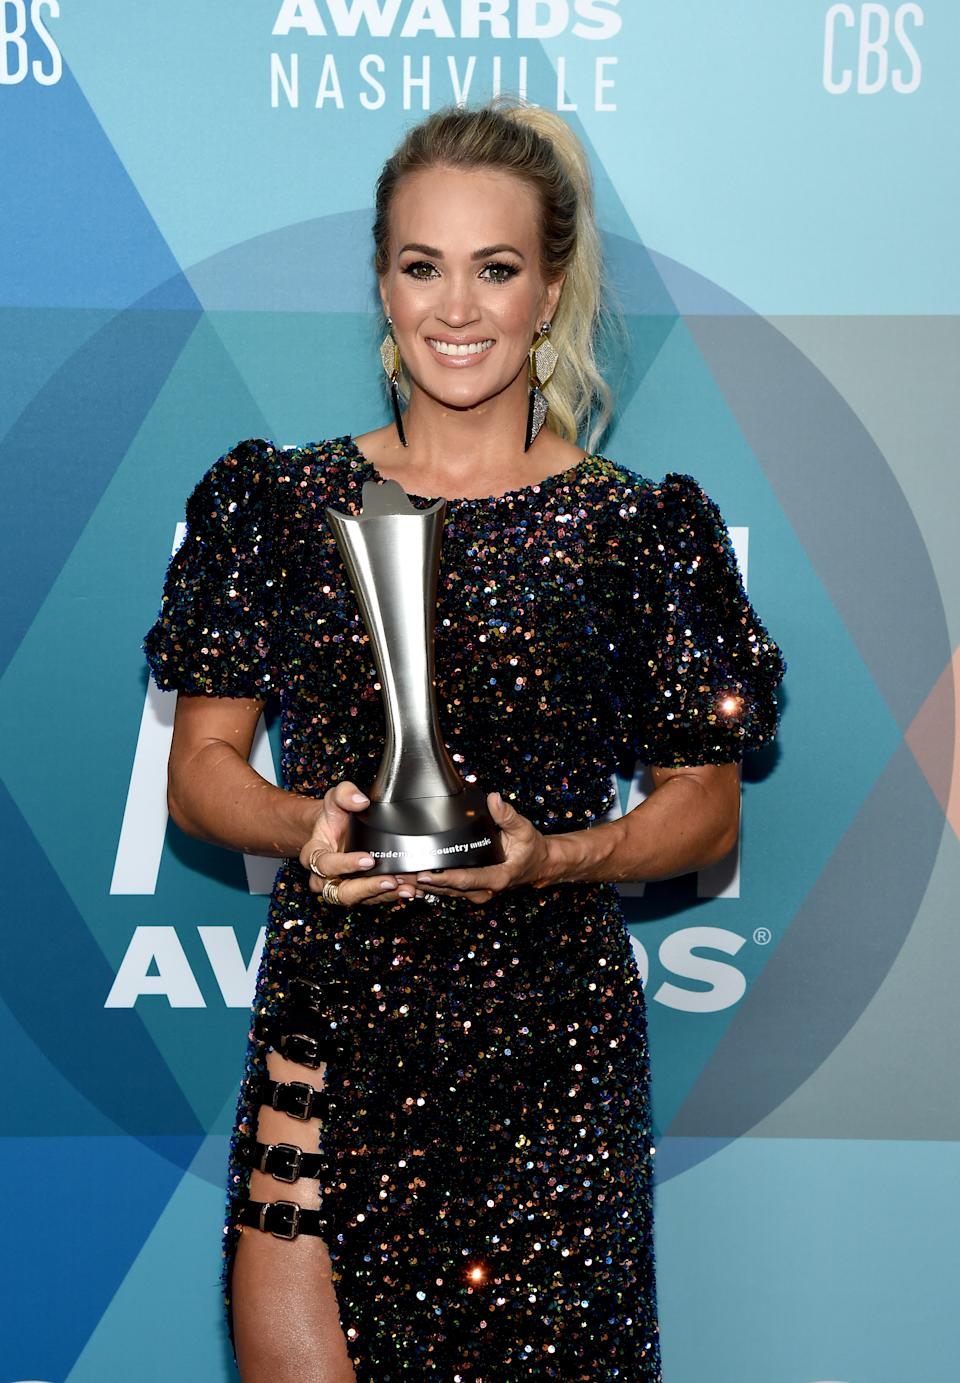 NASHVILLE, TENNESSEE - SEPTEMBER 16: Carrie Underwood poses with the Entertainer of the Year award at the 55th Academy of Country Music Awards at the Grand Ole Opry on September 16, 2020 in Nashville, Tennessee. The ACM Awards airs on September 16, 2020 with some live and some prerecorded segments.   (Photo by John Shearer/ACMA2020/Getty Images for ACM)